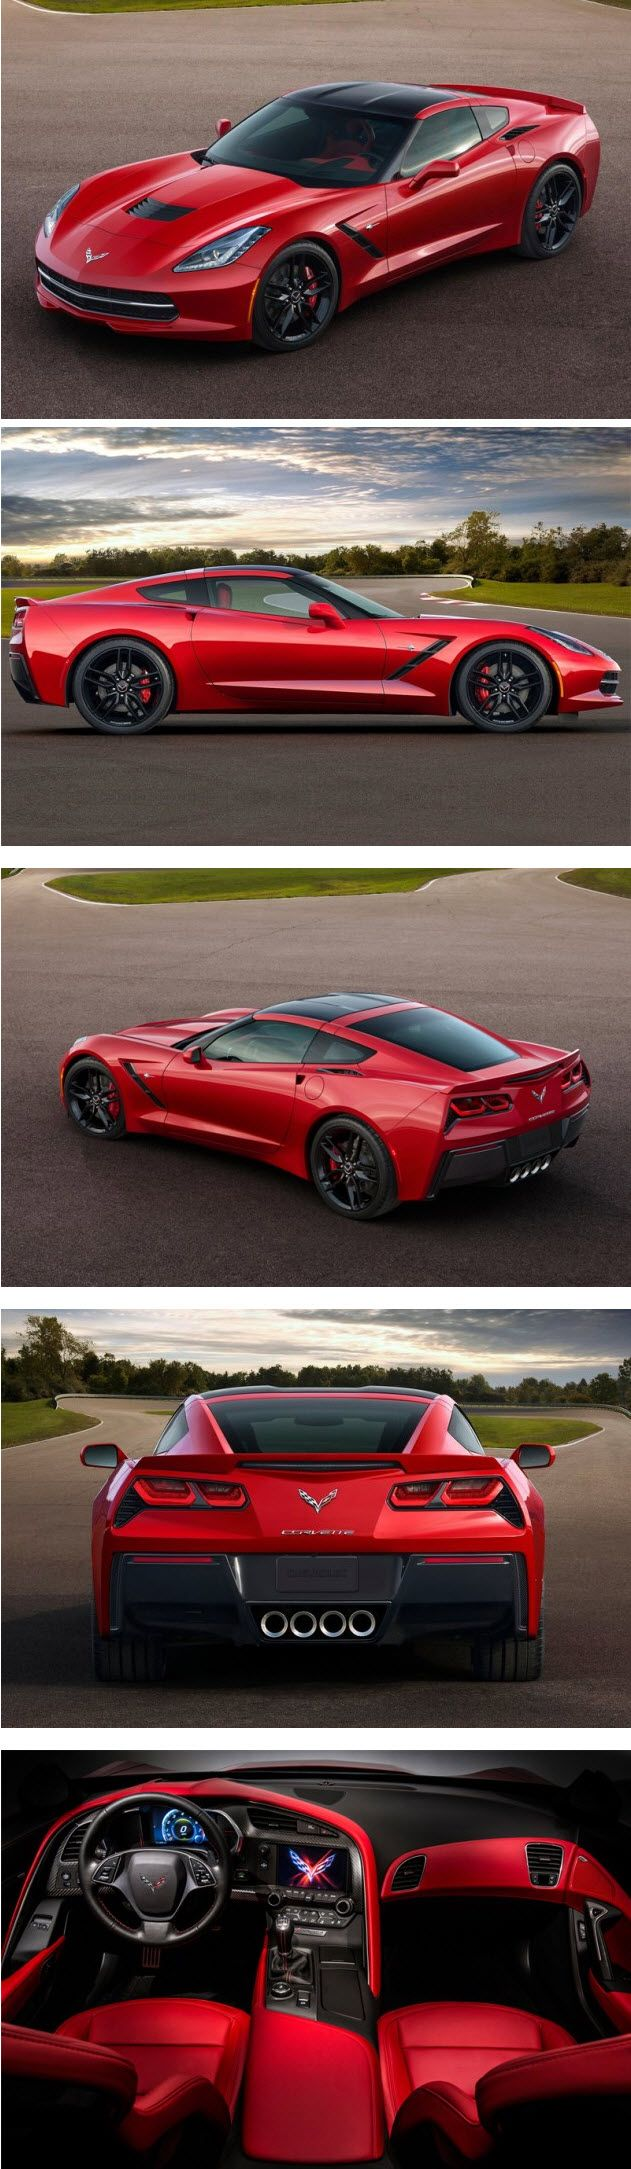 Complete car crush on this vehicle. 2014 CHEVROLET CORVETTE STINGRAY #ParamusChevrolet #Corvette